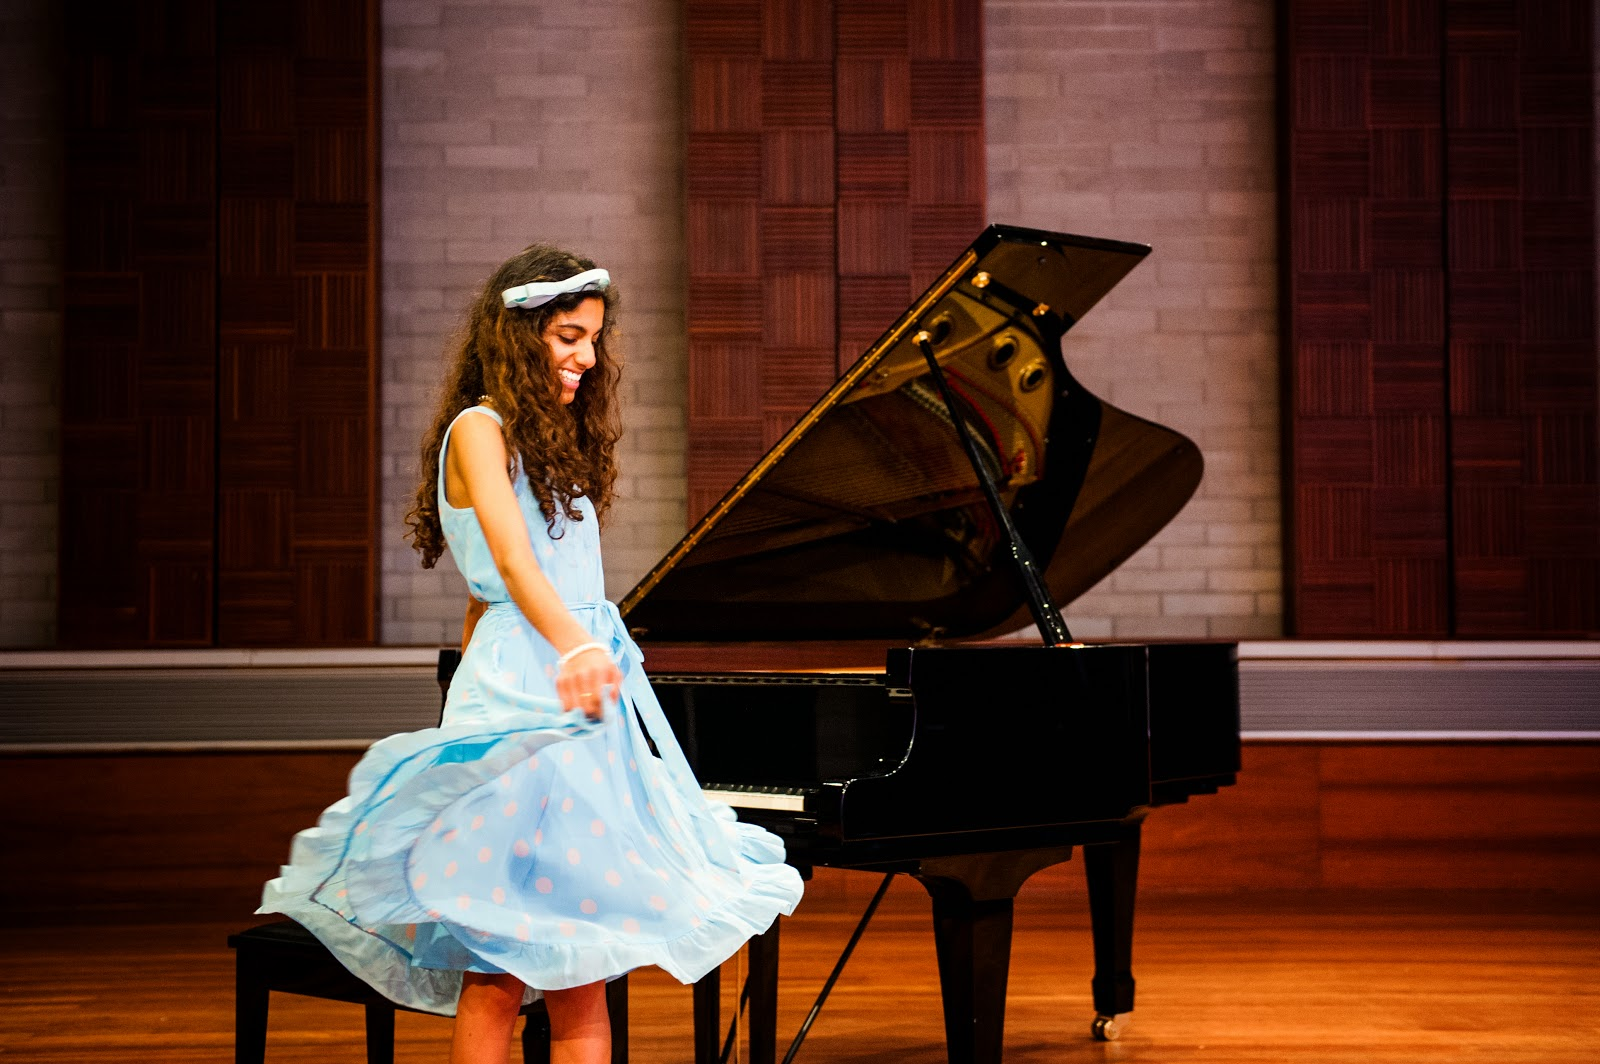 yamaha grand piano alannah hill graduation recital photoshoot